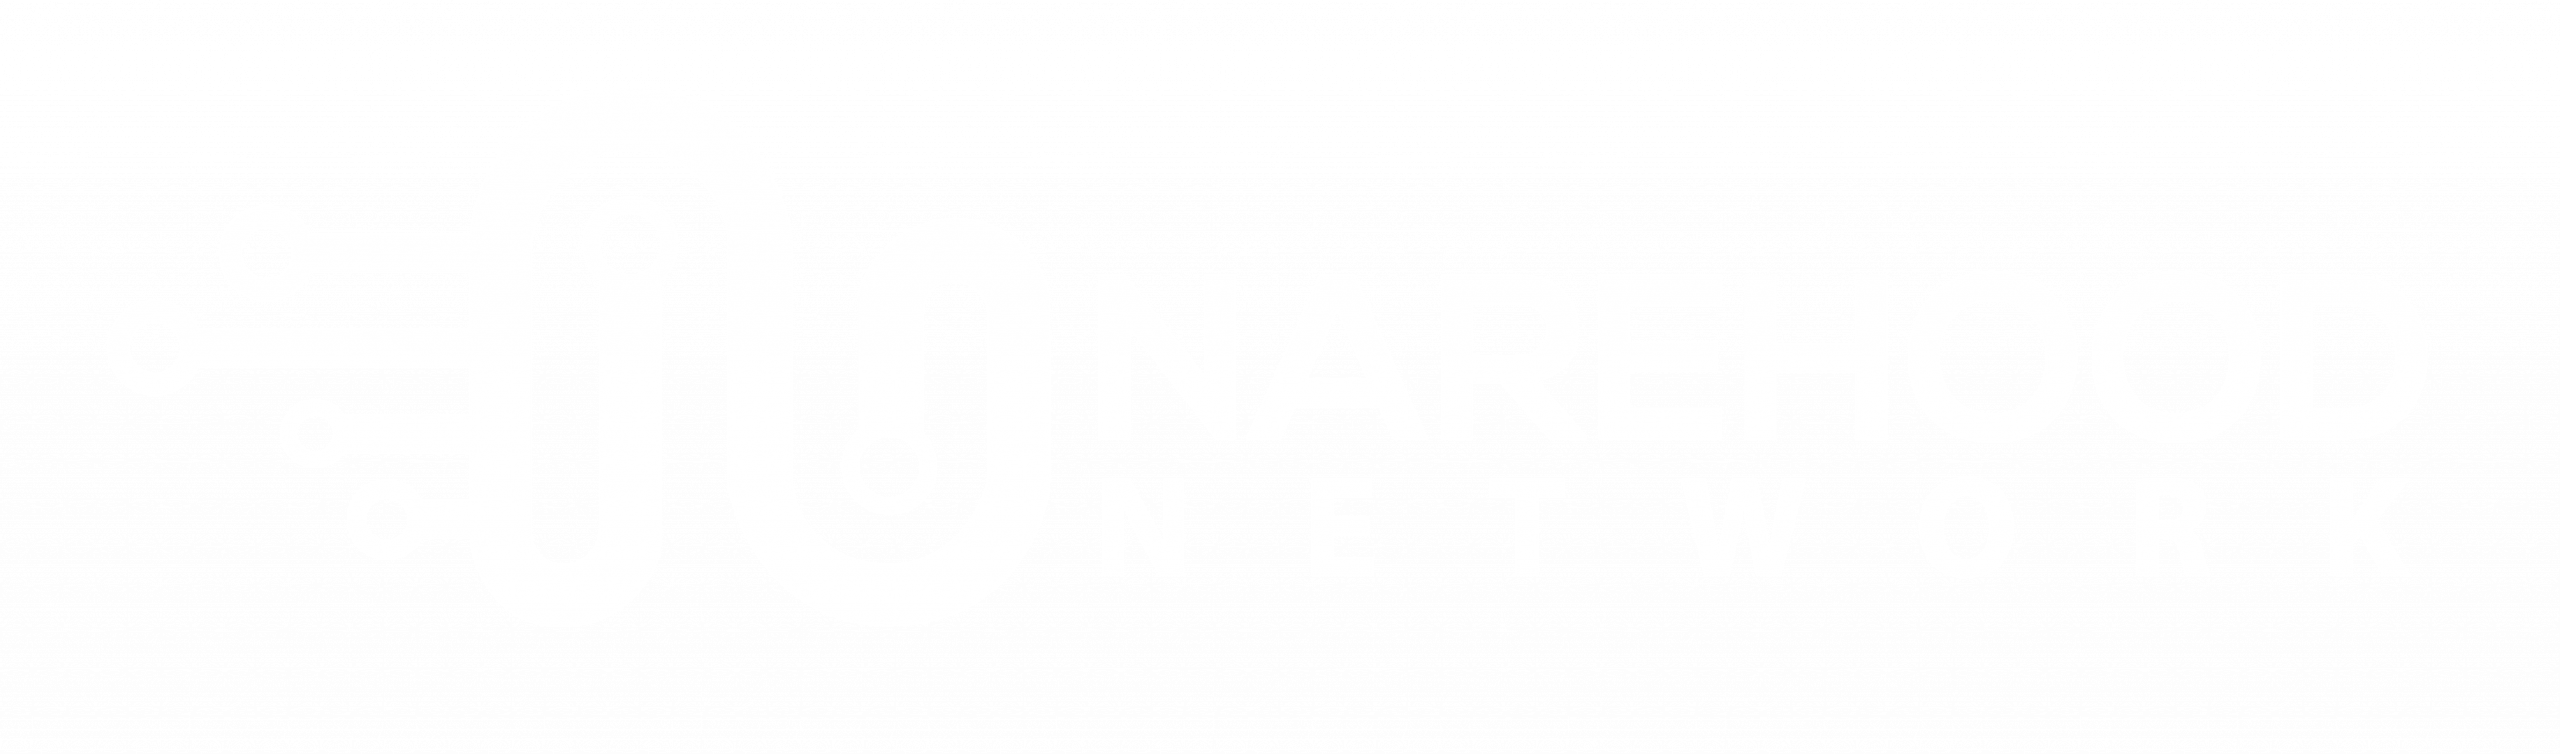 Narehood Network